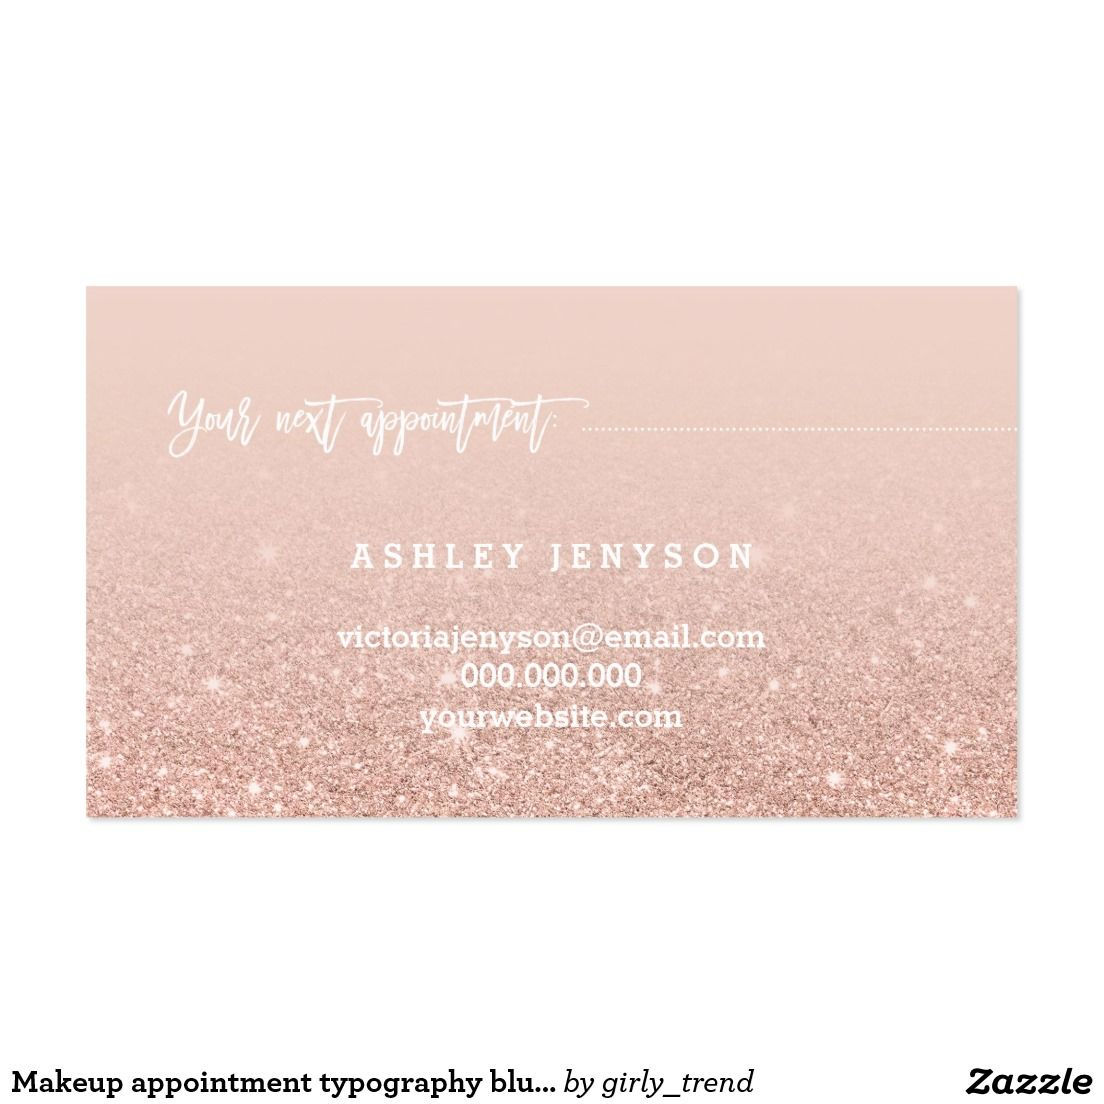 Makeup appointment typography blush rose gold business card makeup appointment typography blush rose gold business card magicingreecefo Gallery